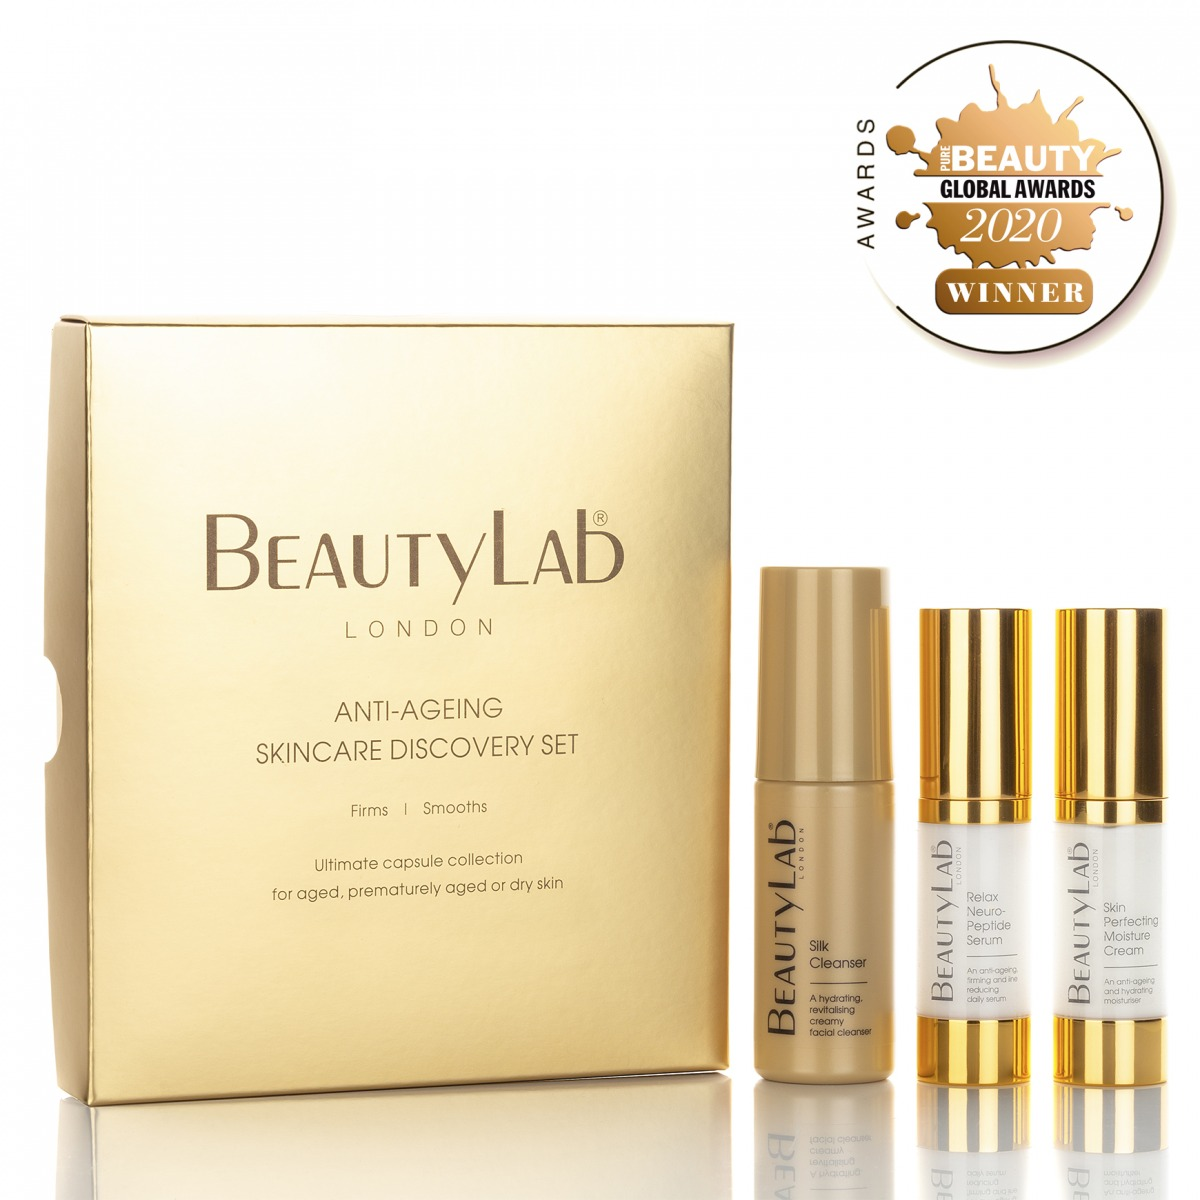 Anti-Ageing Skincare Discovery set